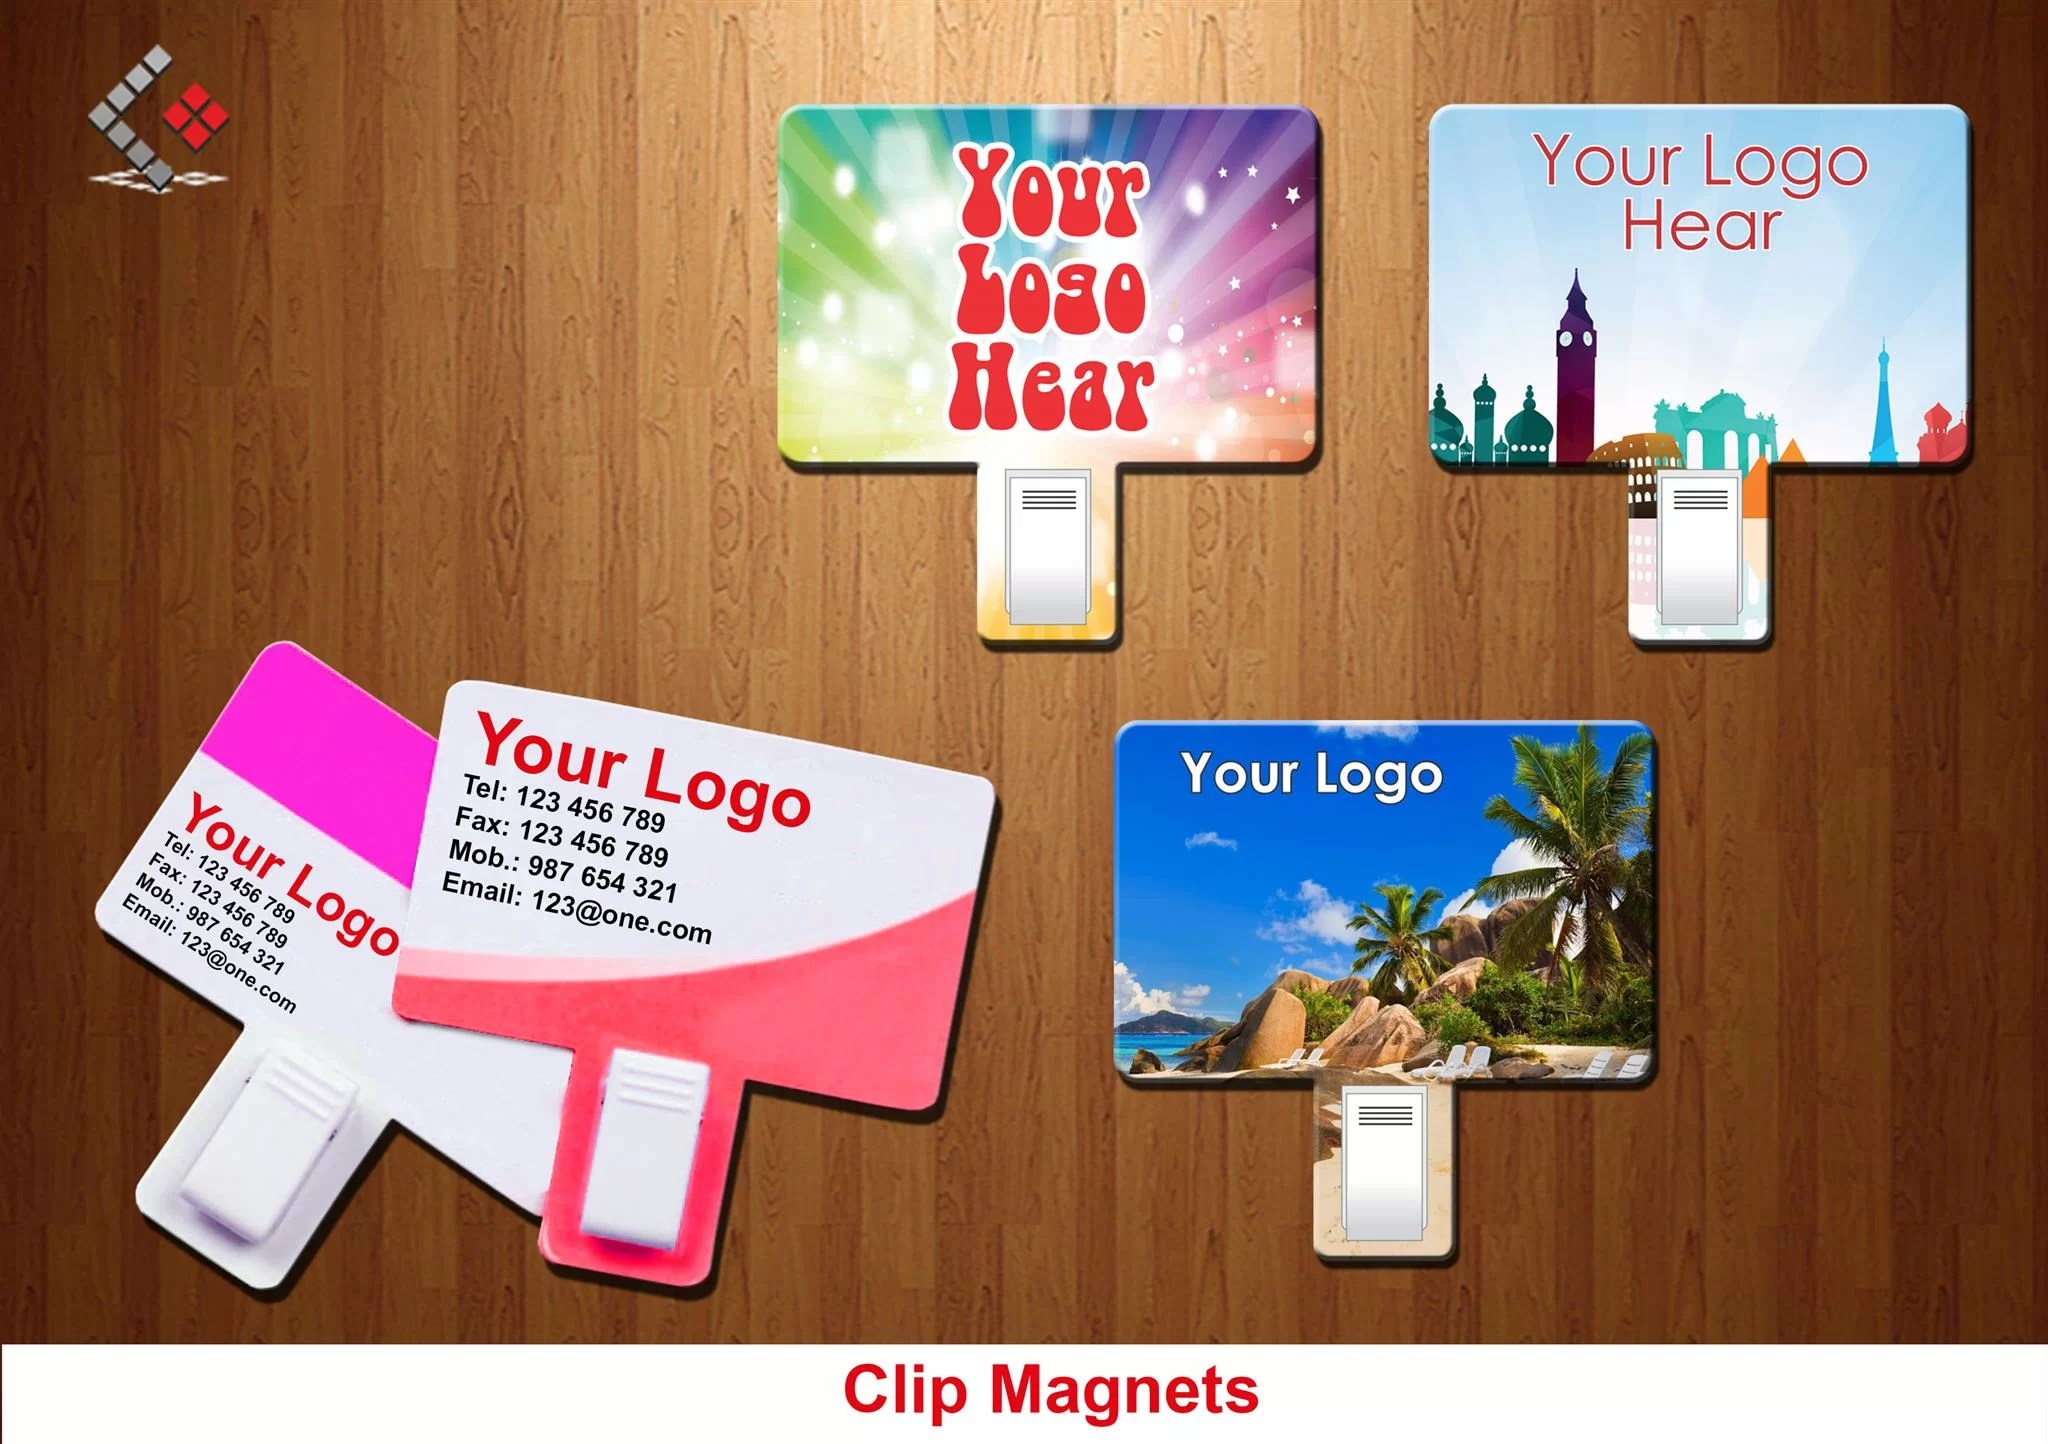 Clip Magnets, Magnets Promotional Items in Dubai & abu Dhabi